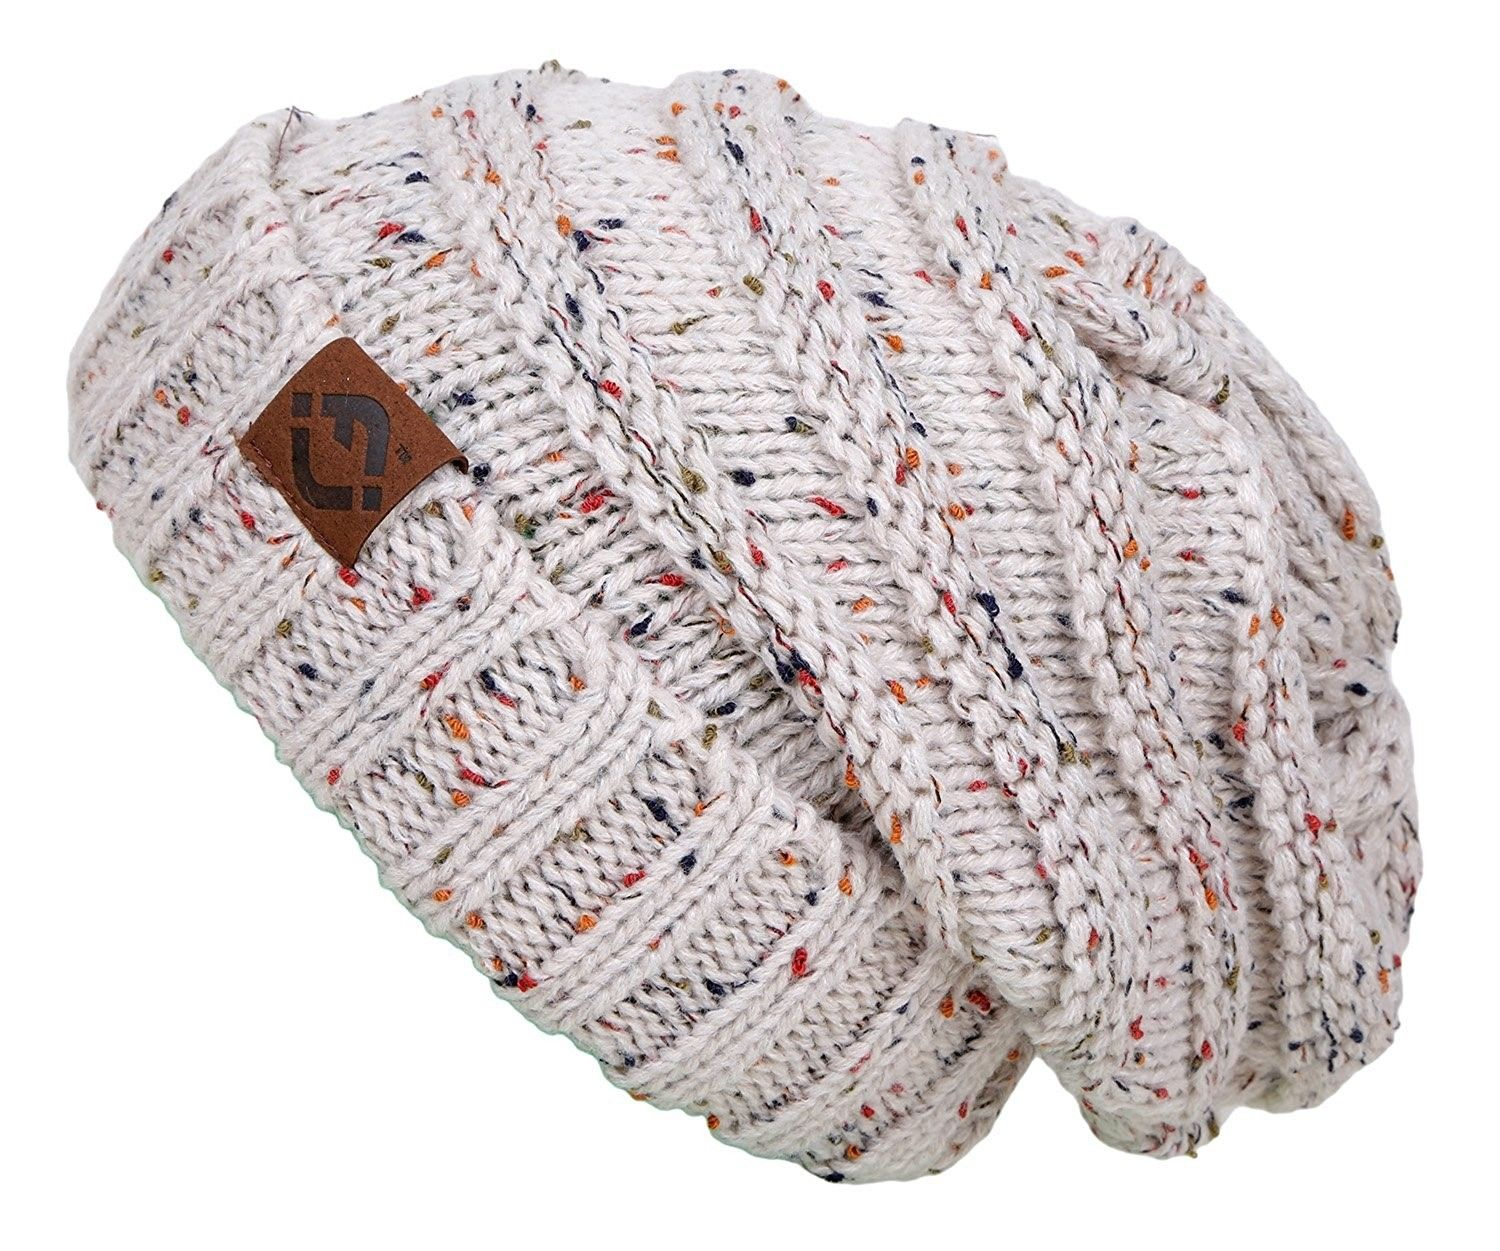 e2767db8520 Funky Junque s FJ Knit Cap Women s Men s Winter Hat Oversized Slouchy Beanie  - Oatmeal -